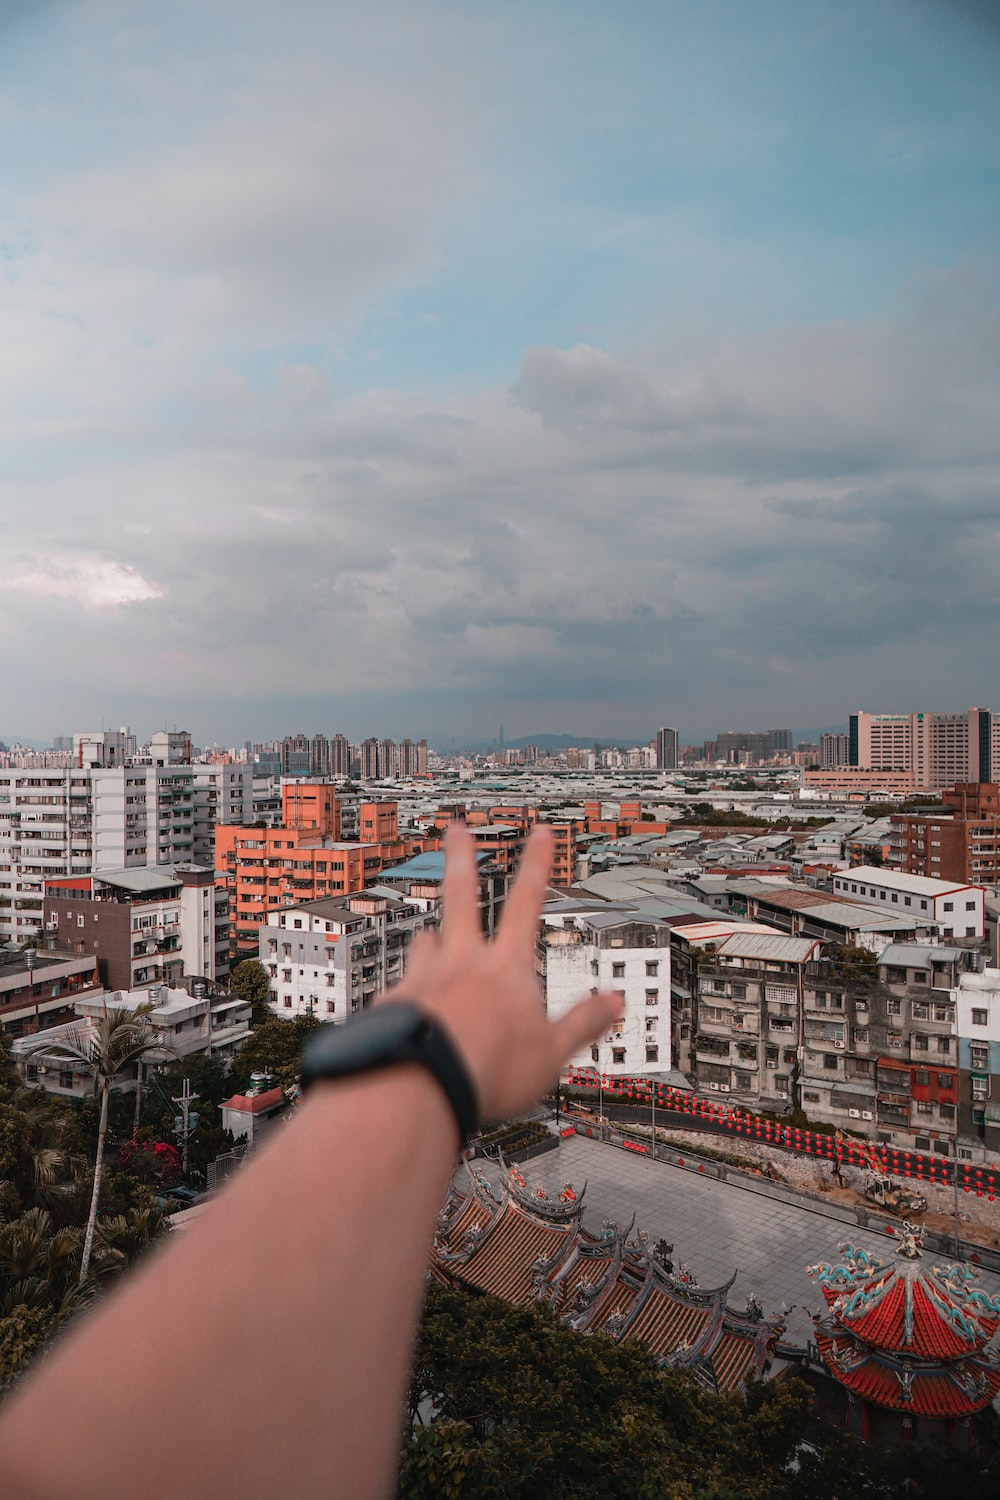 person wearing black watch and black strap watch pointing at city buildings during daytime